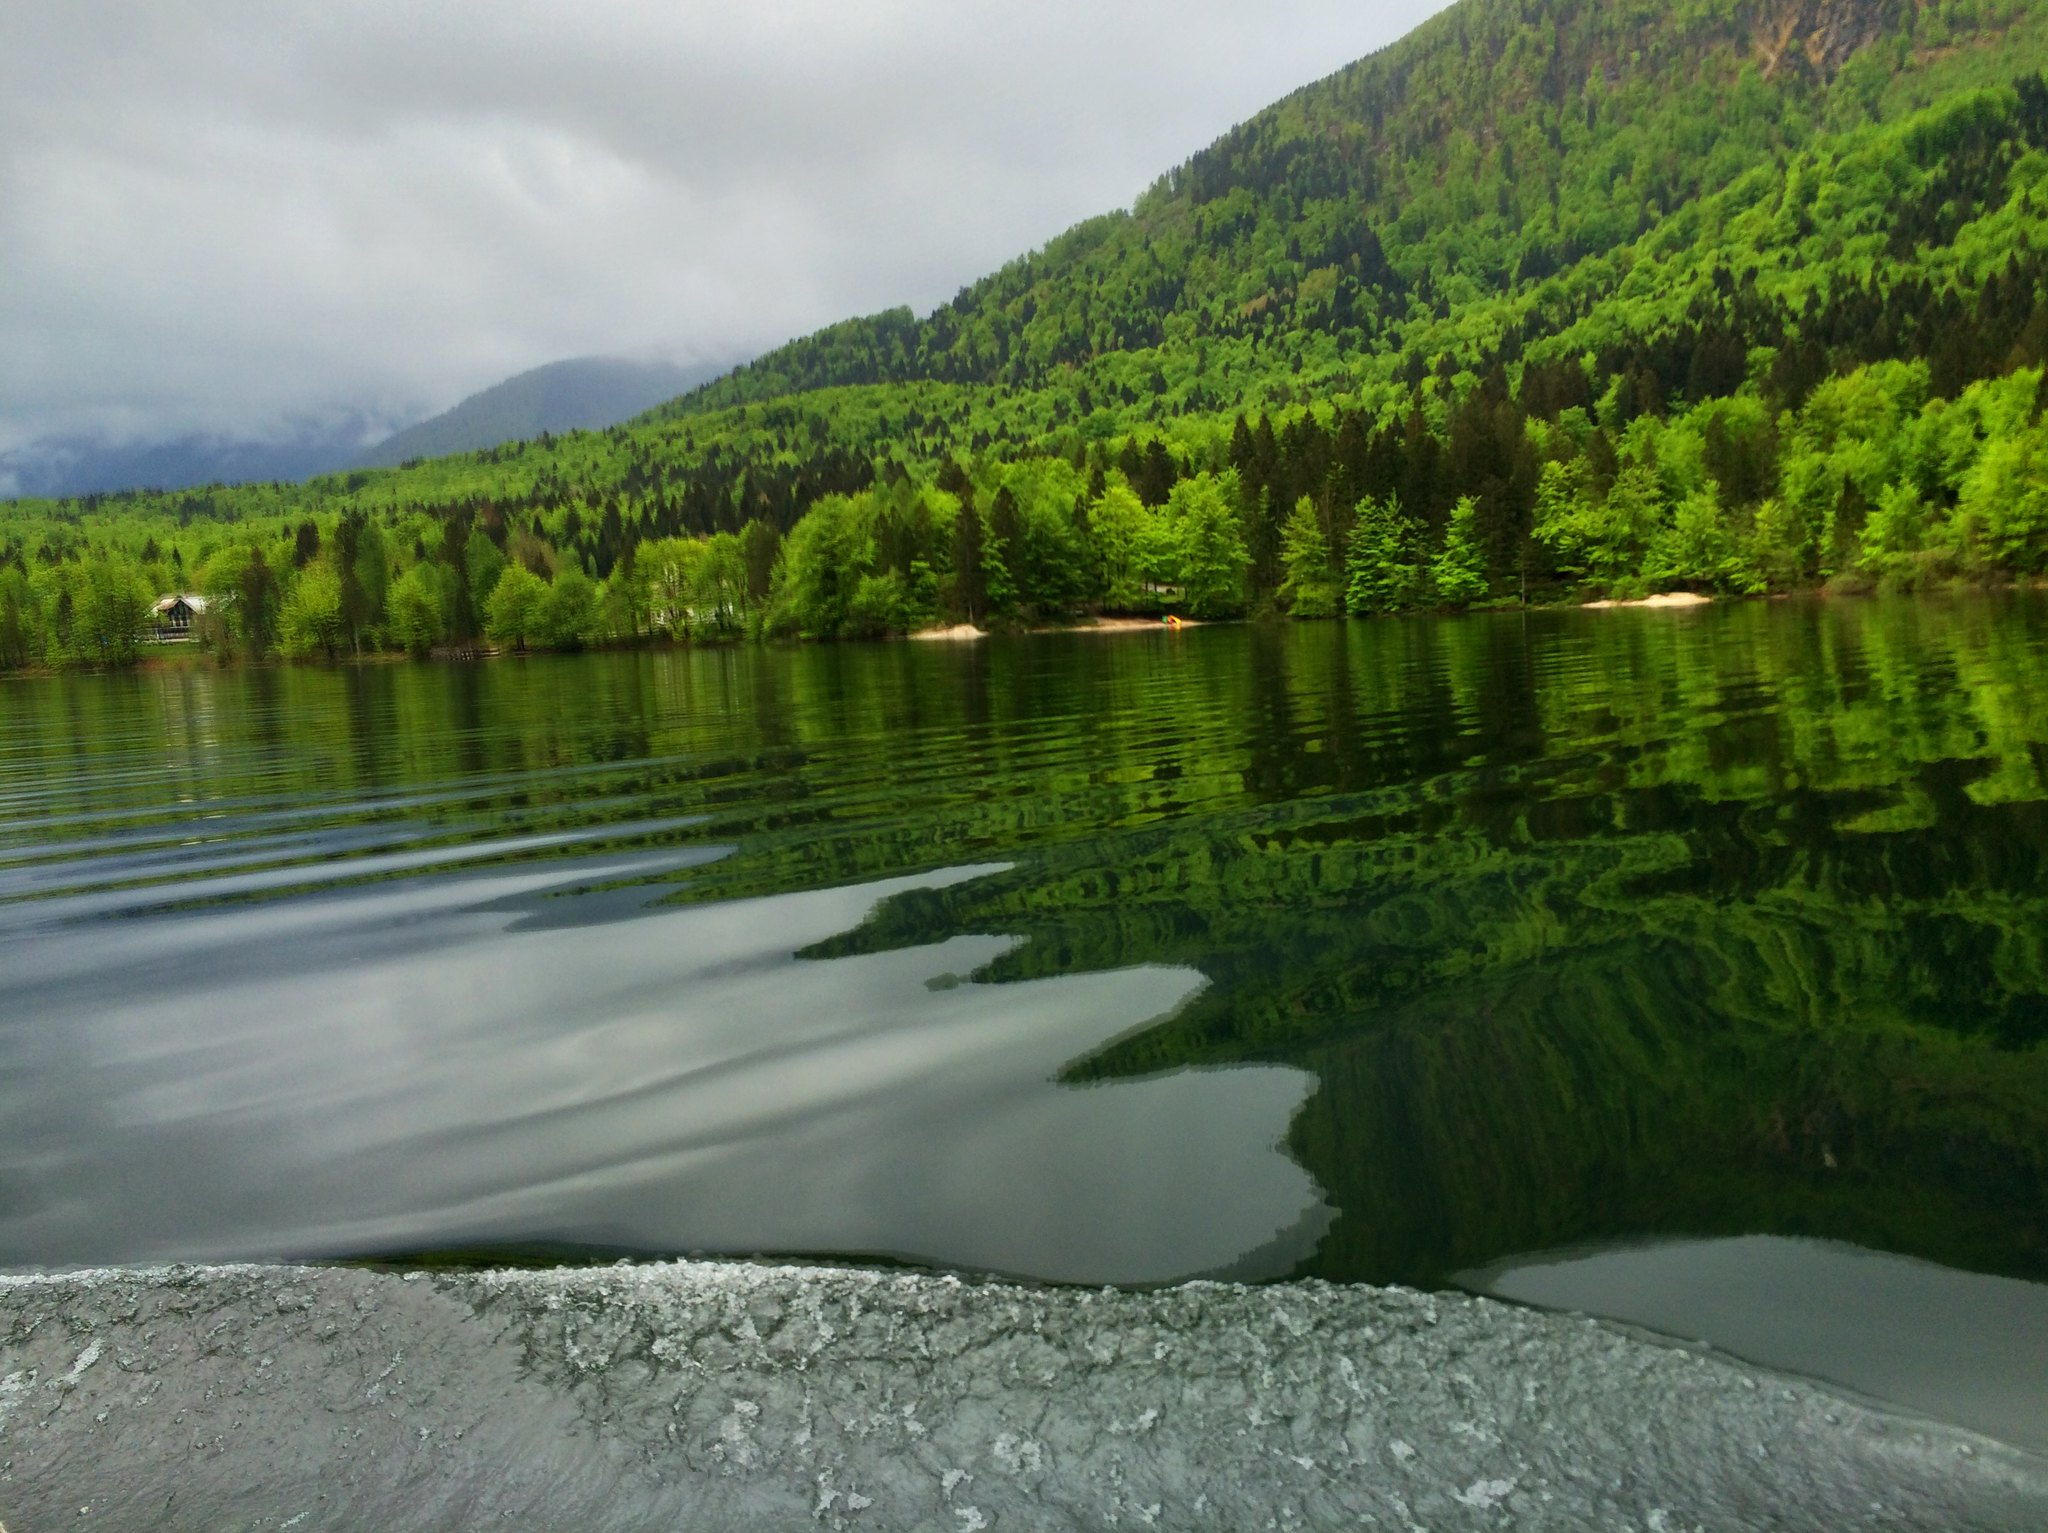 Ferry across Lake Bohinj